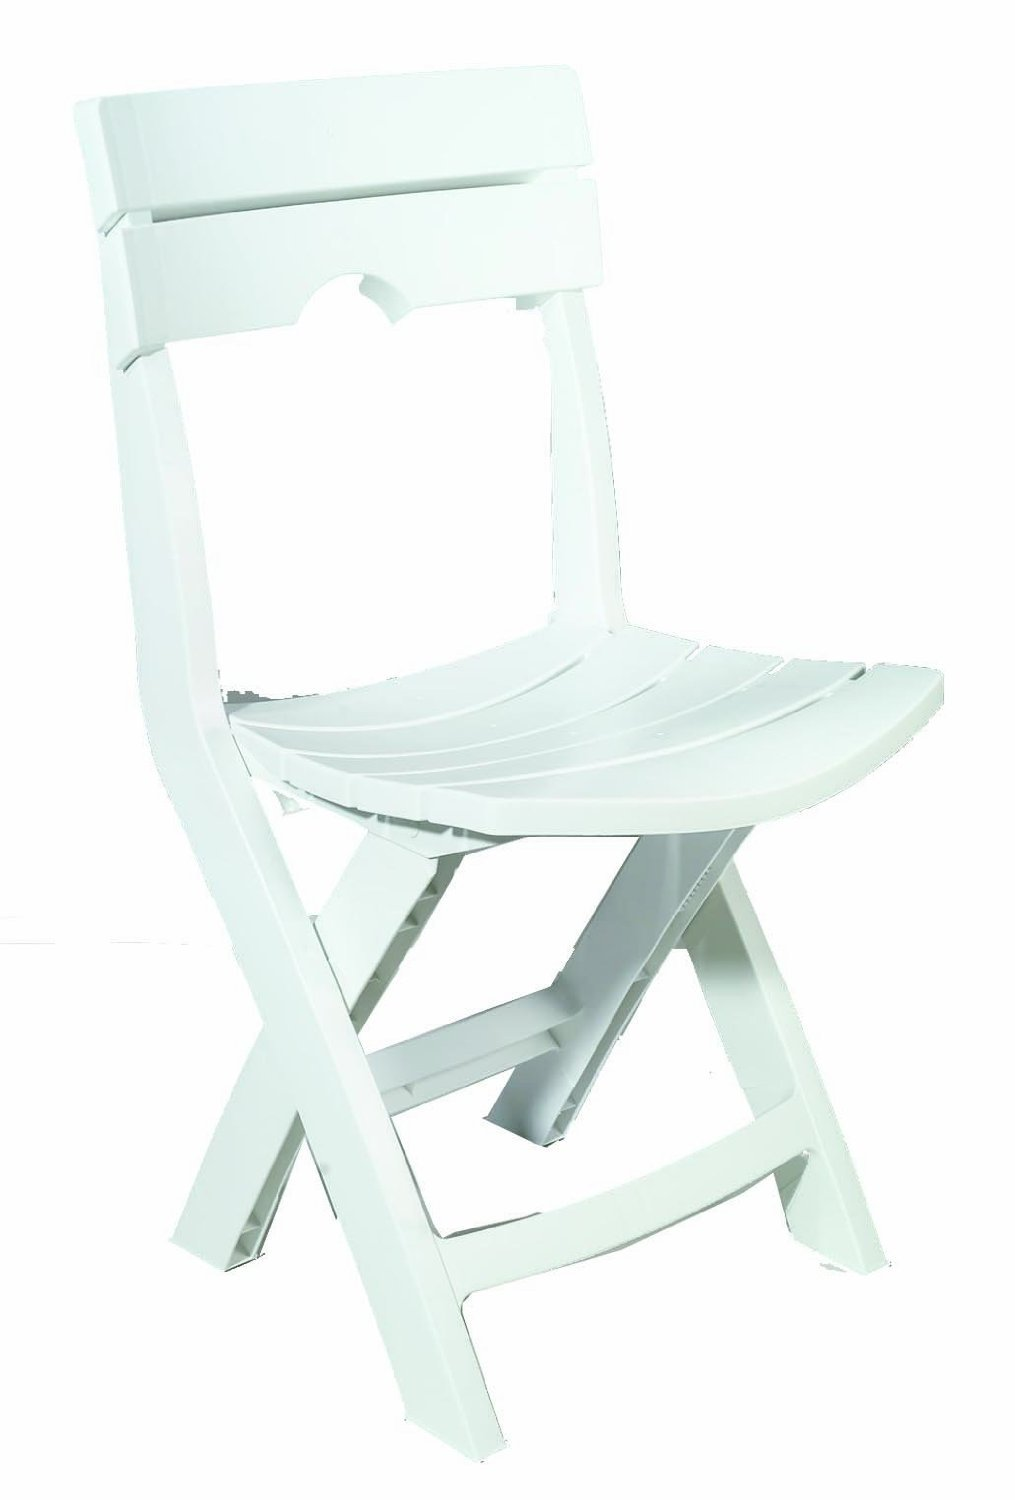 Amazon.com : Adams Manufacturing 8575 48 3700 Quik Fold Chair, White : Folding  Chairs : Garden U0026 Outdoor